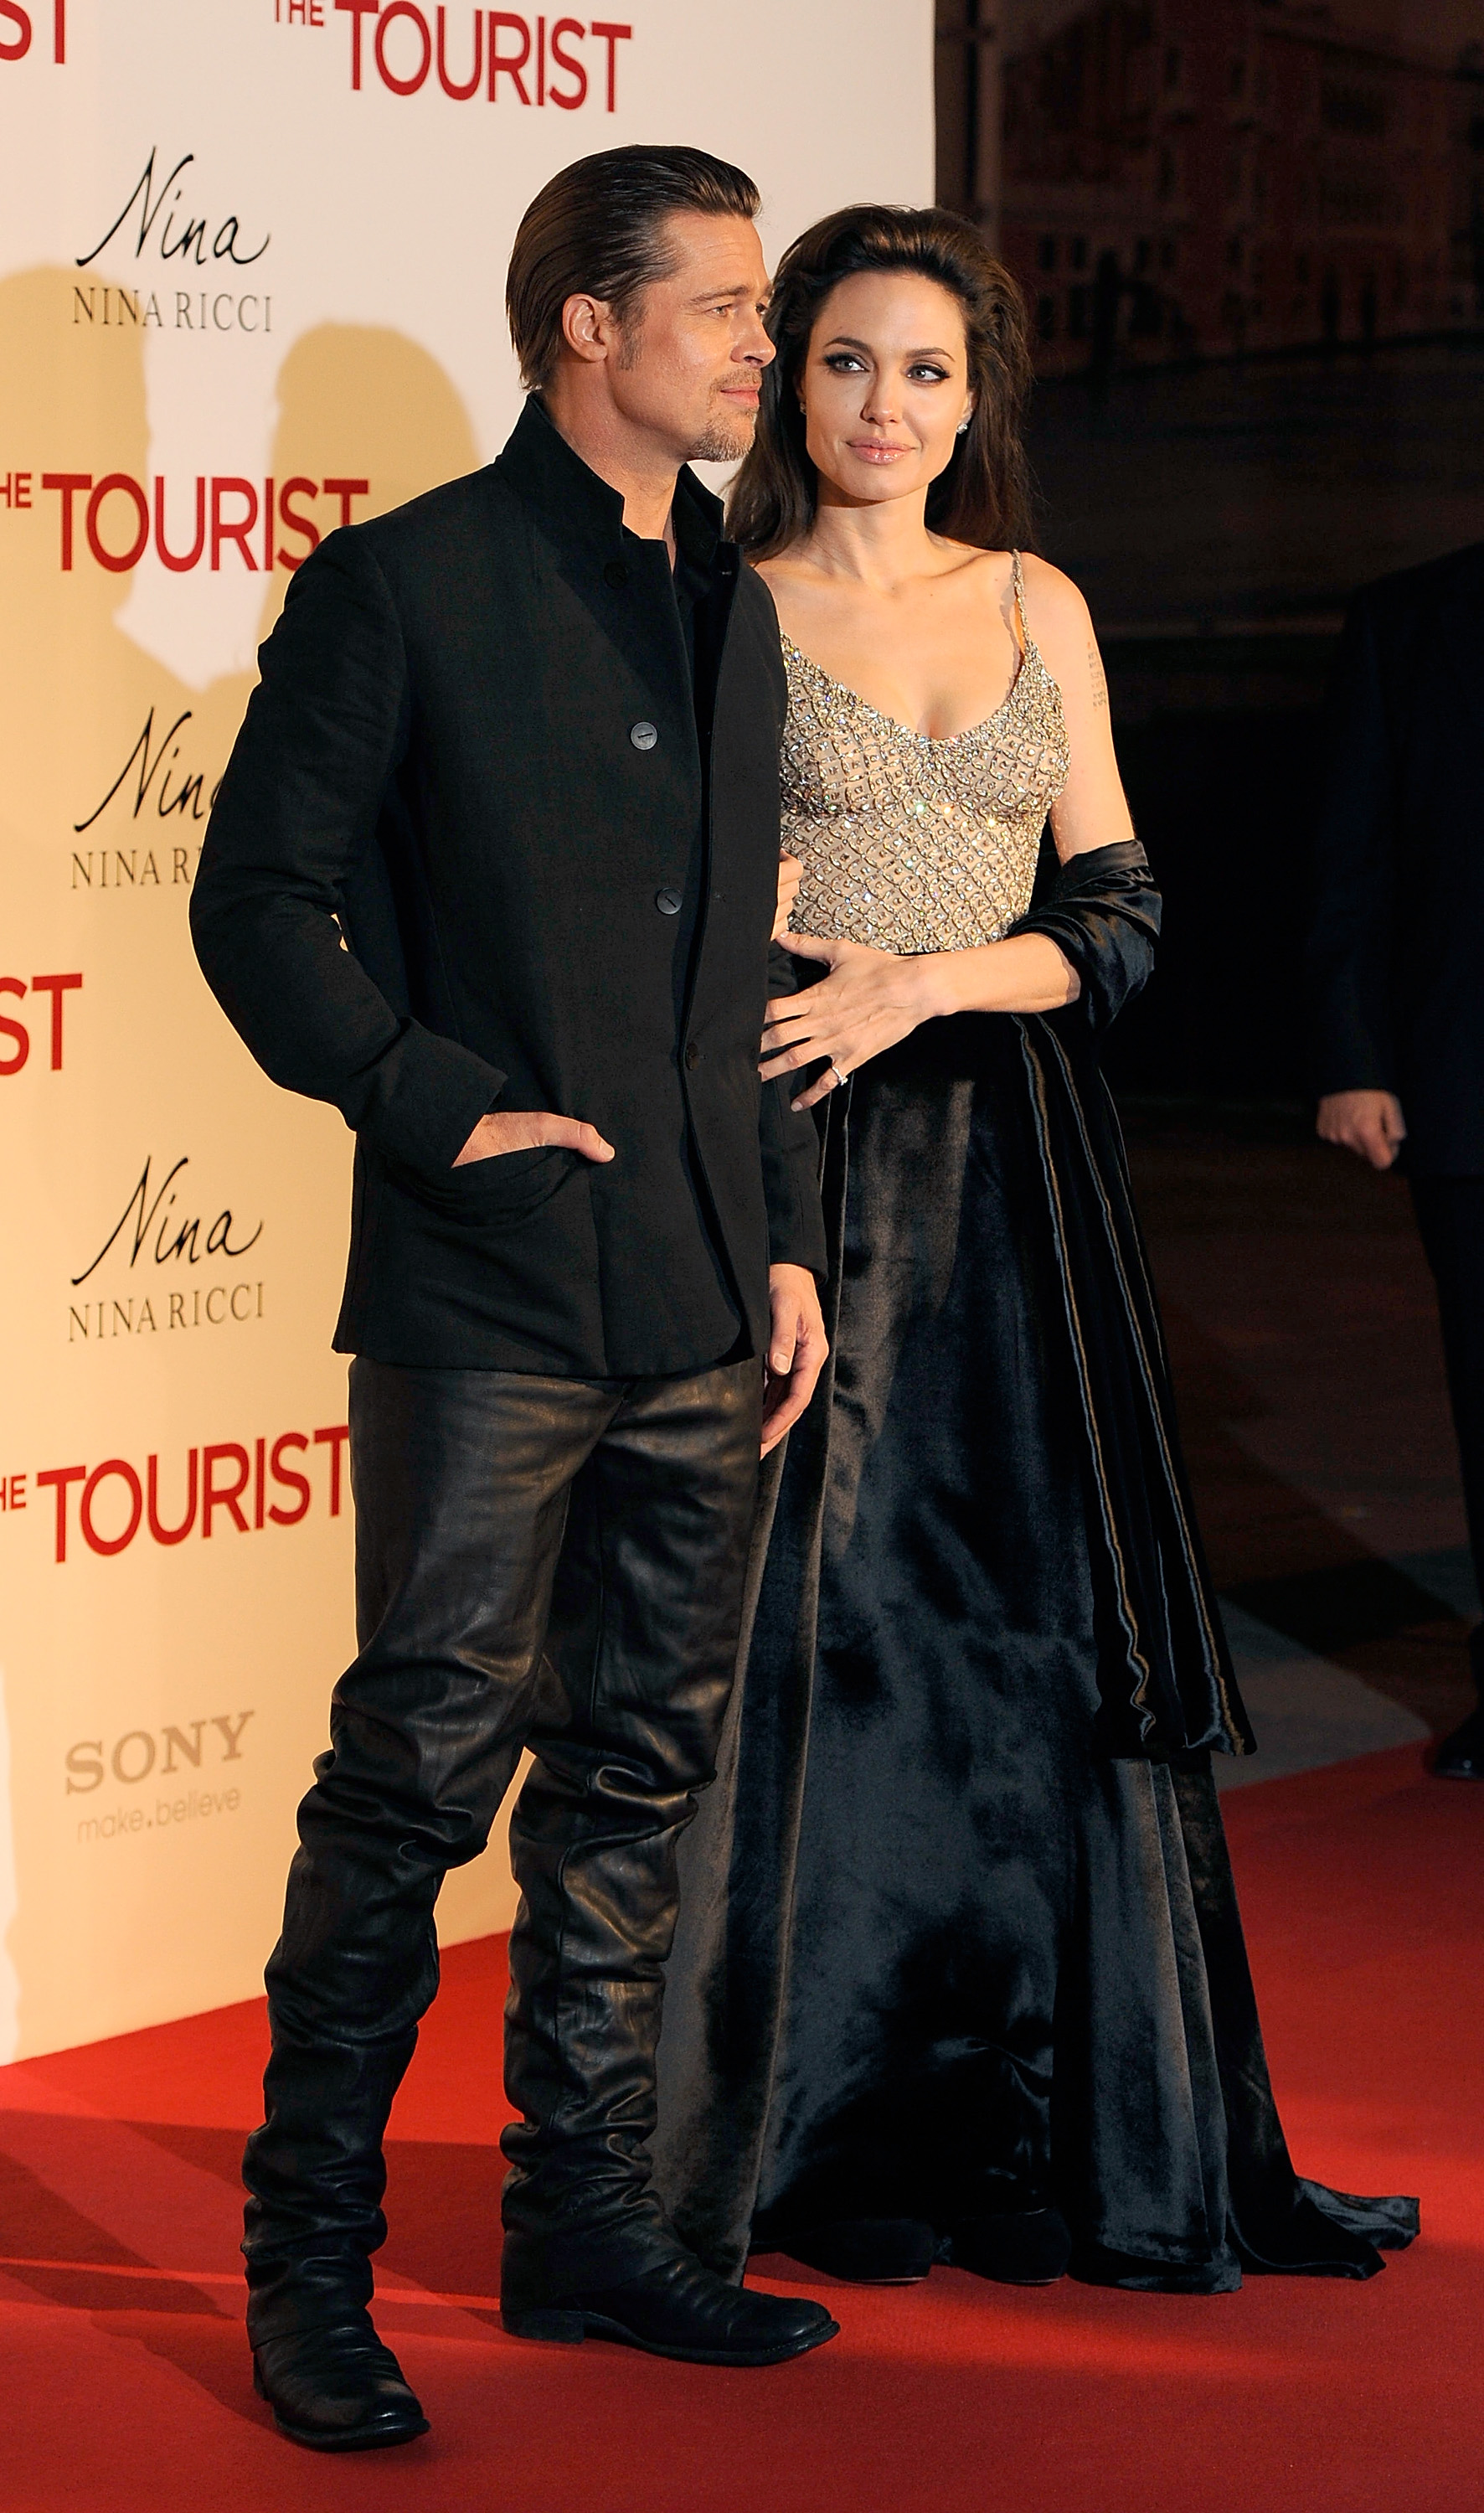 Angelina Jolie sparkled in December 2010 at the Madrid premiere of The Tourist.